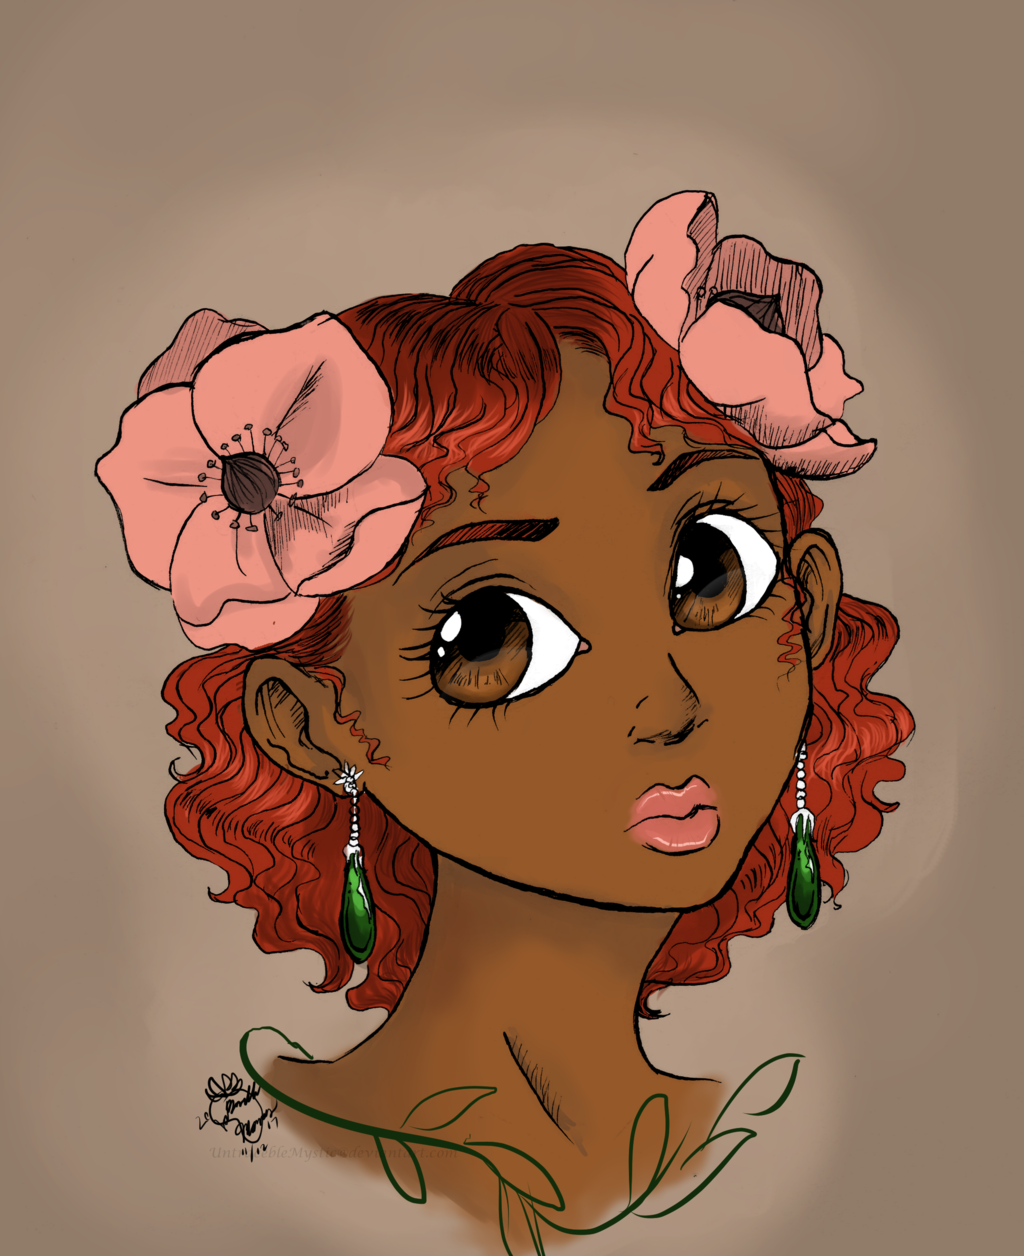 Most recent image: My floral girl